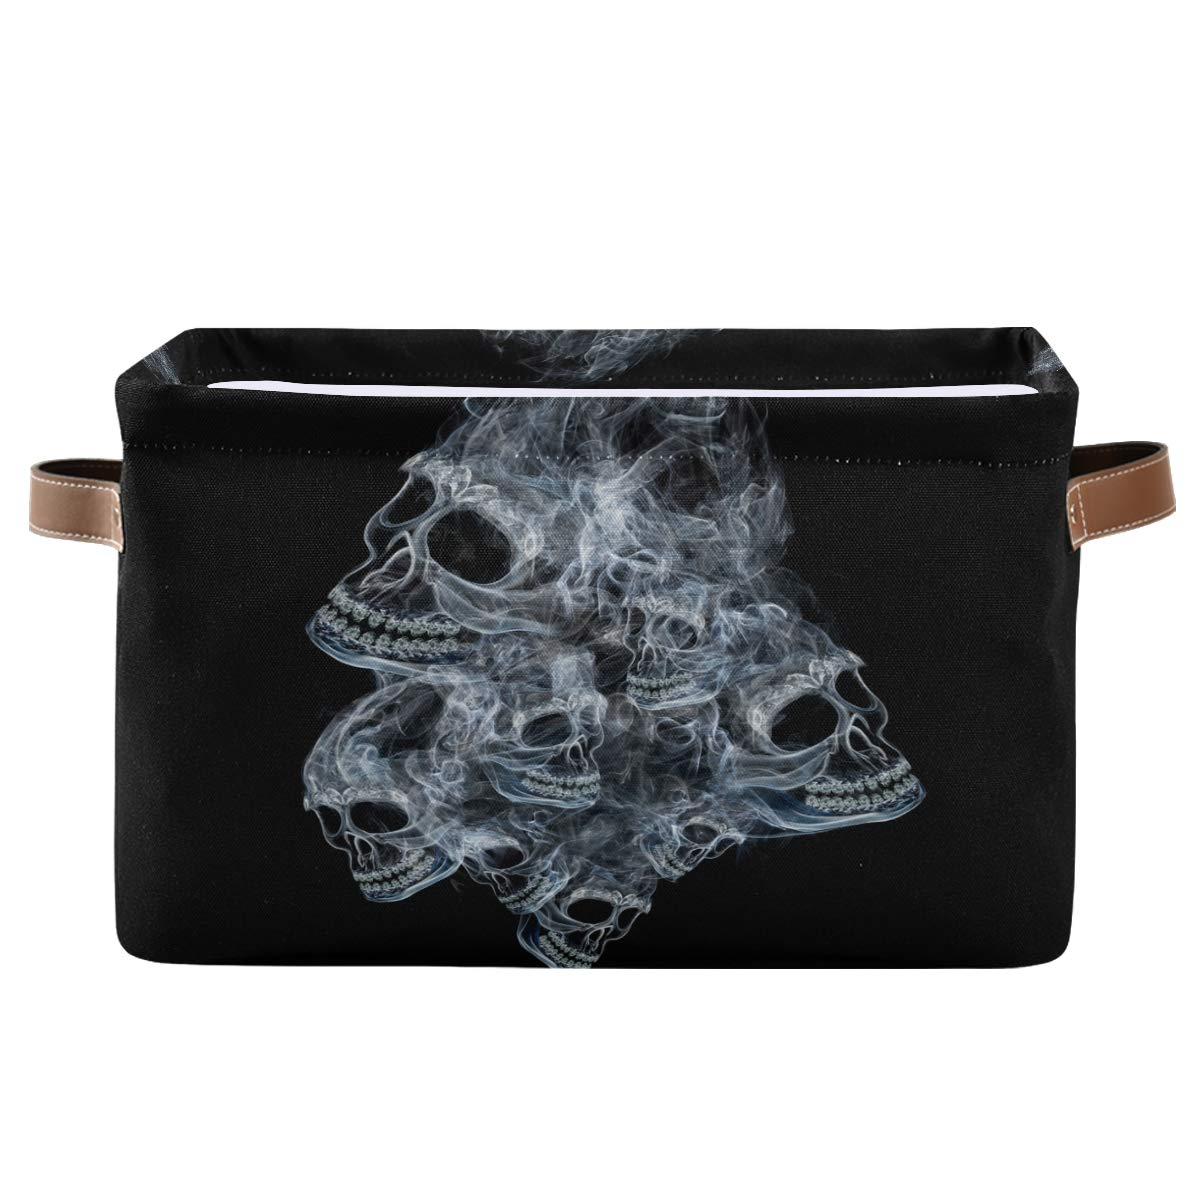 FORMEETY Day of The Dead Max 40% OFF Skull Skeleton ! Super beauty product restock quality top! Women C Storage Bin Kids